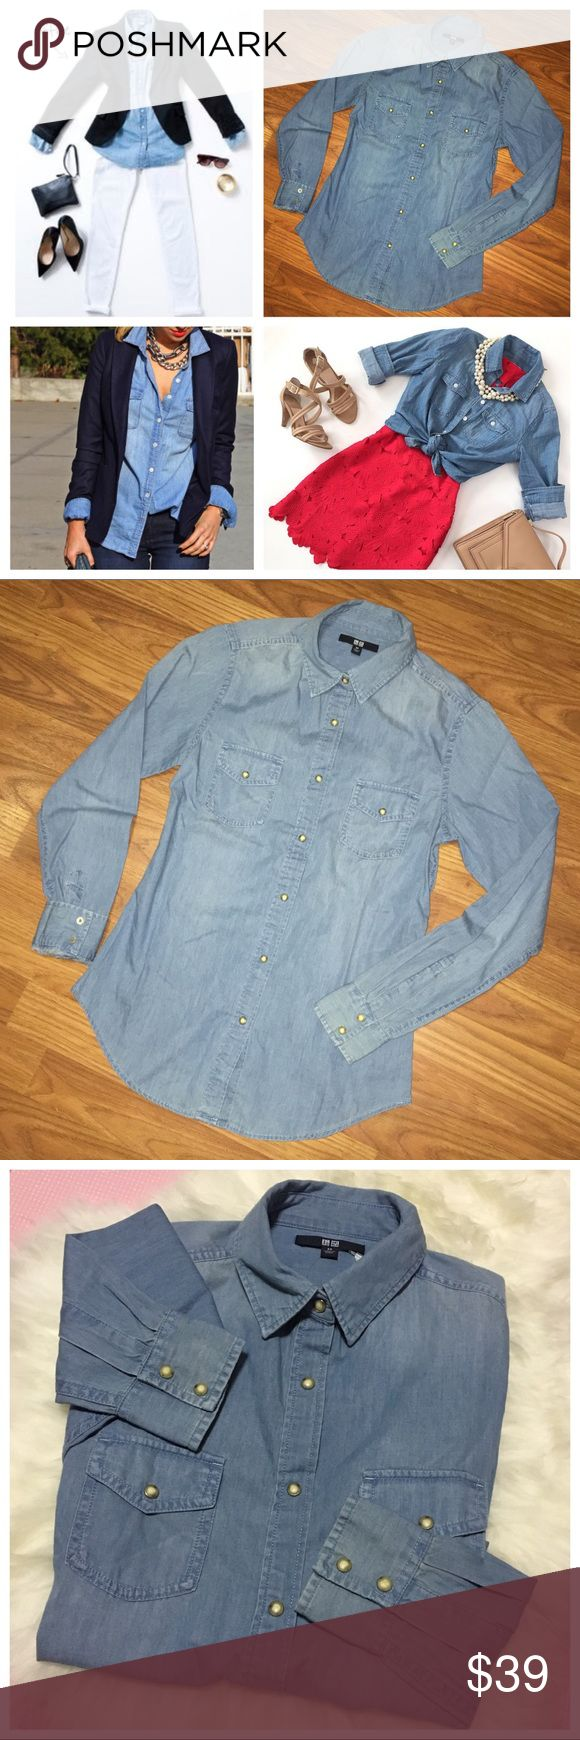 SALE: Uniqlo Denim Designed Chambray Shirt A denim designed long sleeve button down shirt 100% cotton from Uniqlo. The style is 63 blue, a light and medium blue combination. It has pockets on both sides, all pop button closures. Casual shirt that can be paired with dress pants/jeans/skirt. Comfortable, lightweight & well made. Size xsmall for bust 31-33 inches, can fit small. Questions welcomed. Pinterest images from photo 1 is for styling reference, not the same exact shirt, photos 2-8 are…